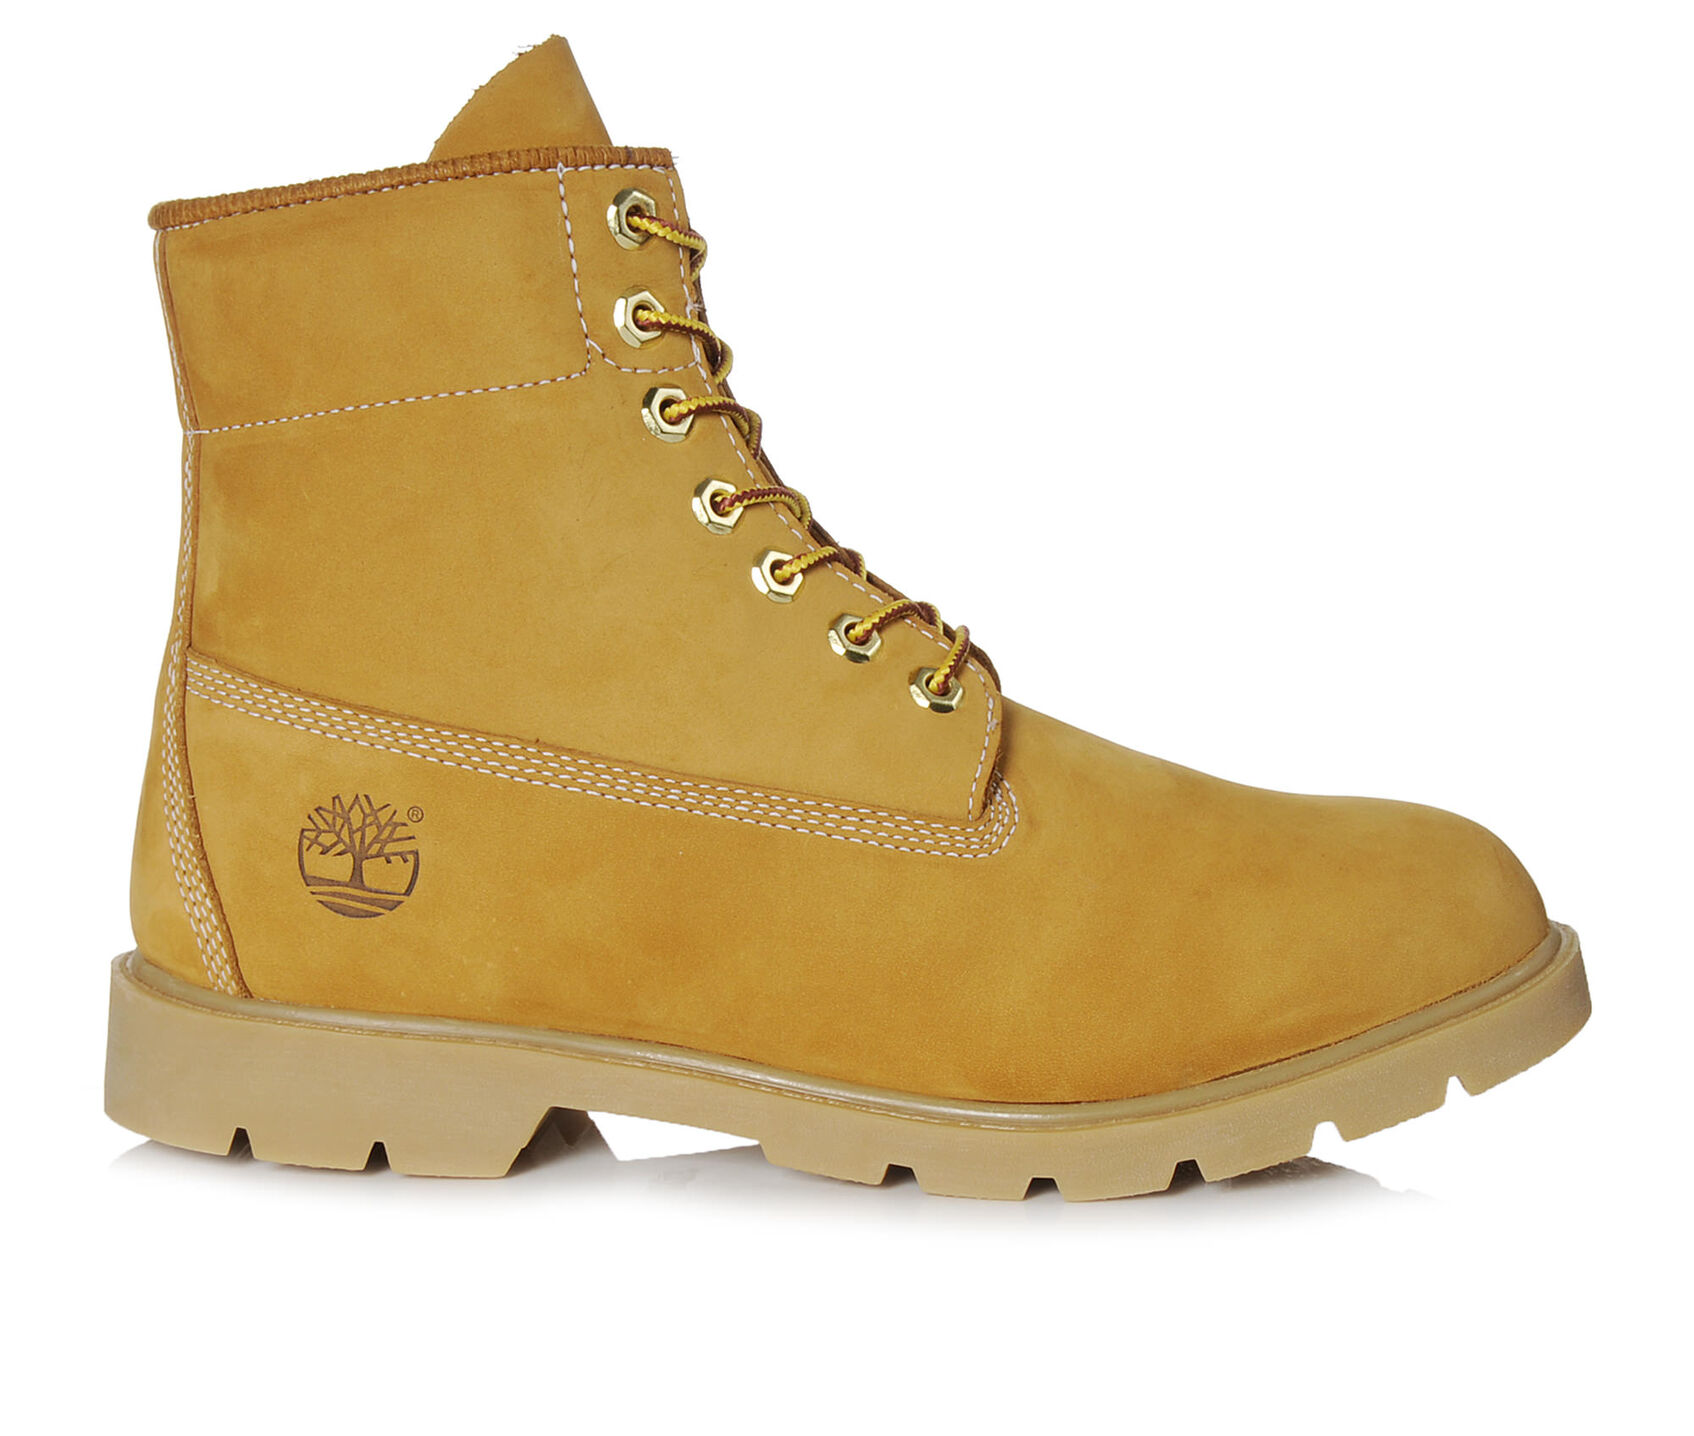 19b1c470ce4e ... Timberland 6 Inch Basic Waterproof Boots. Previous